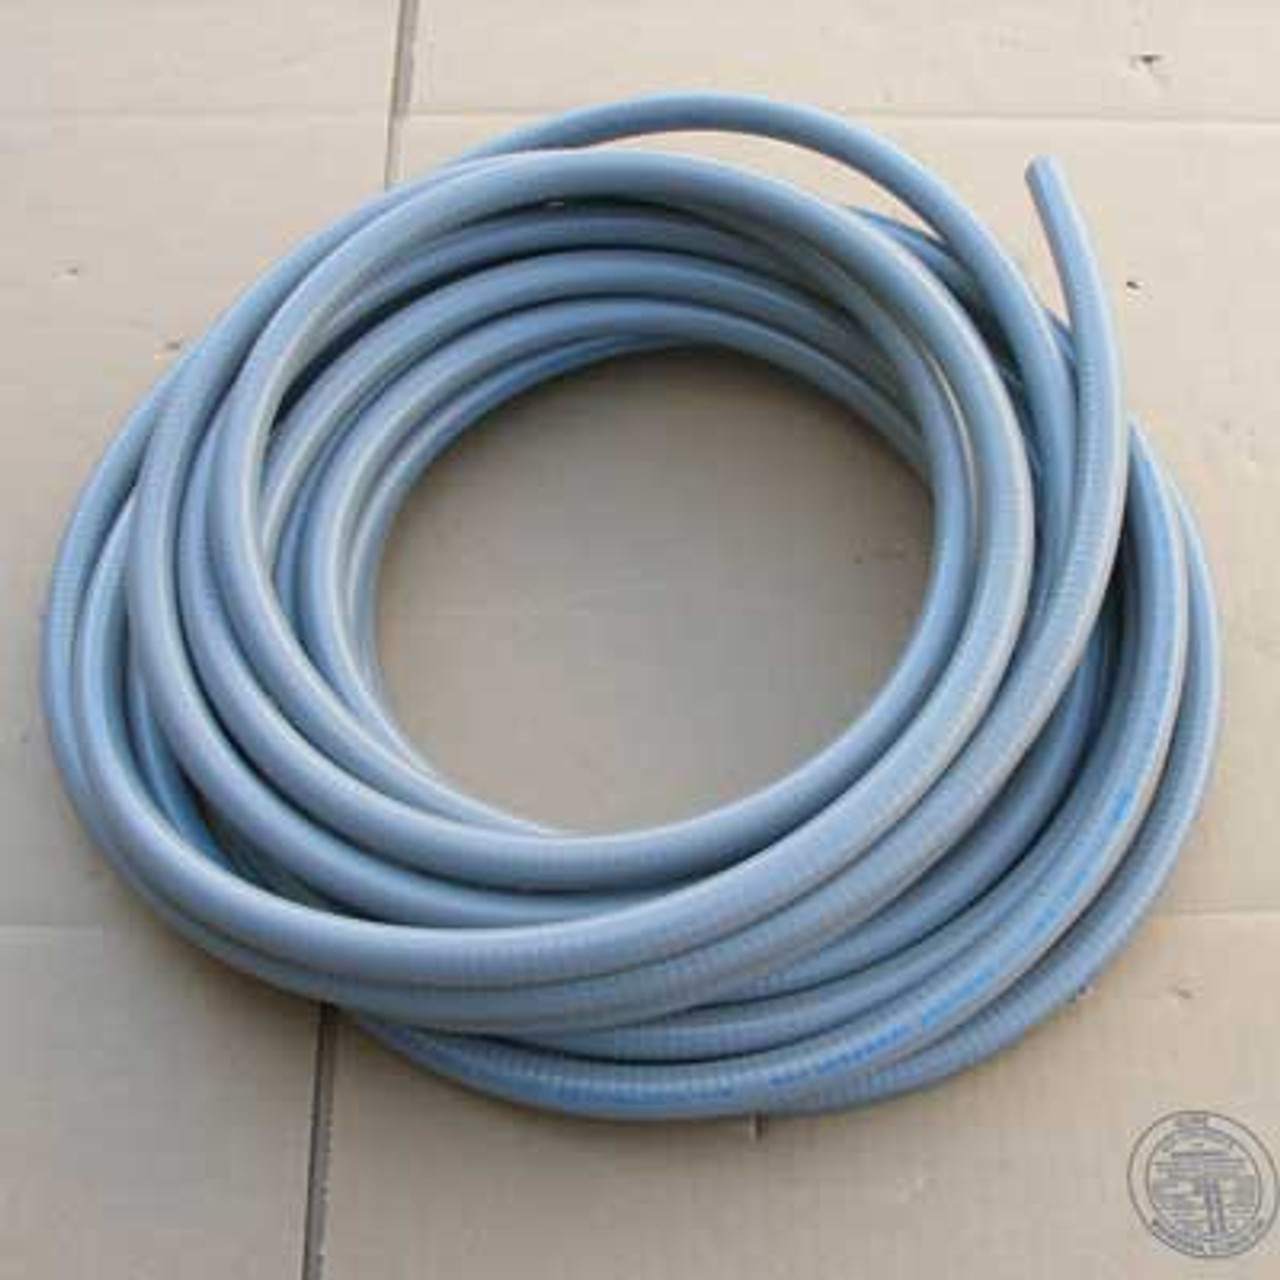 "Liquatite LOR-10 50 Foot 3/8"" Gray Flexable Electrical Tubing - New"